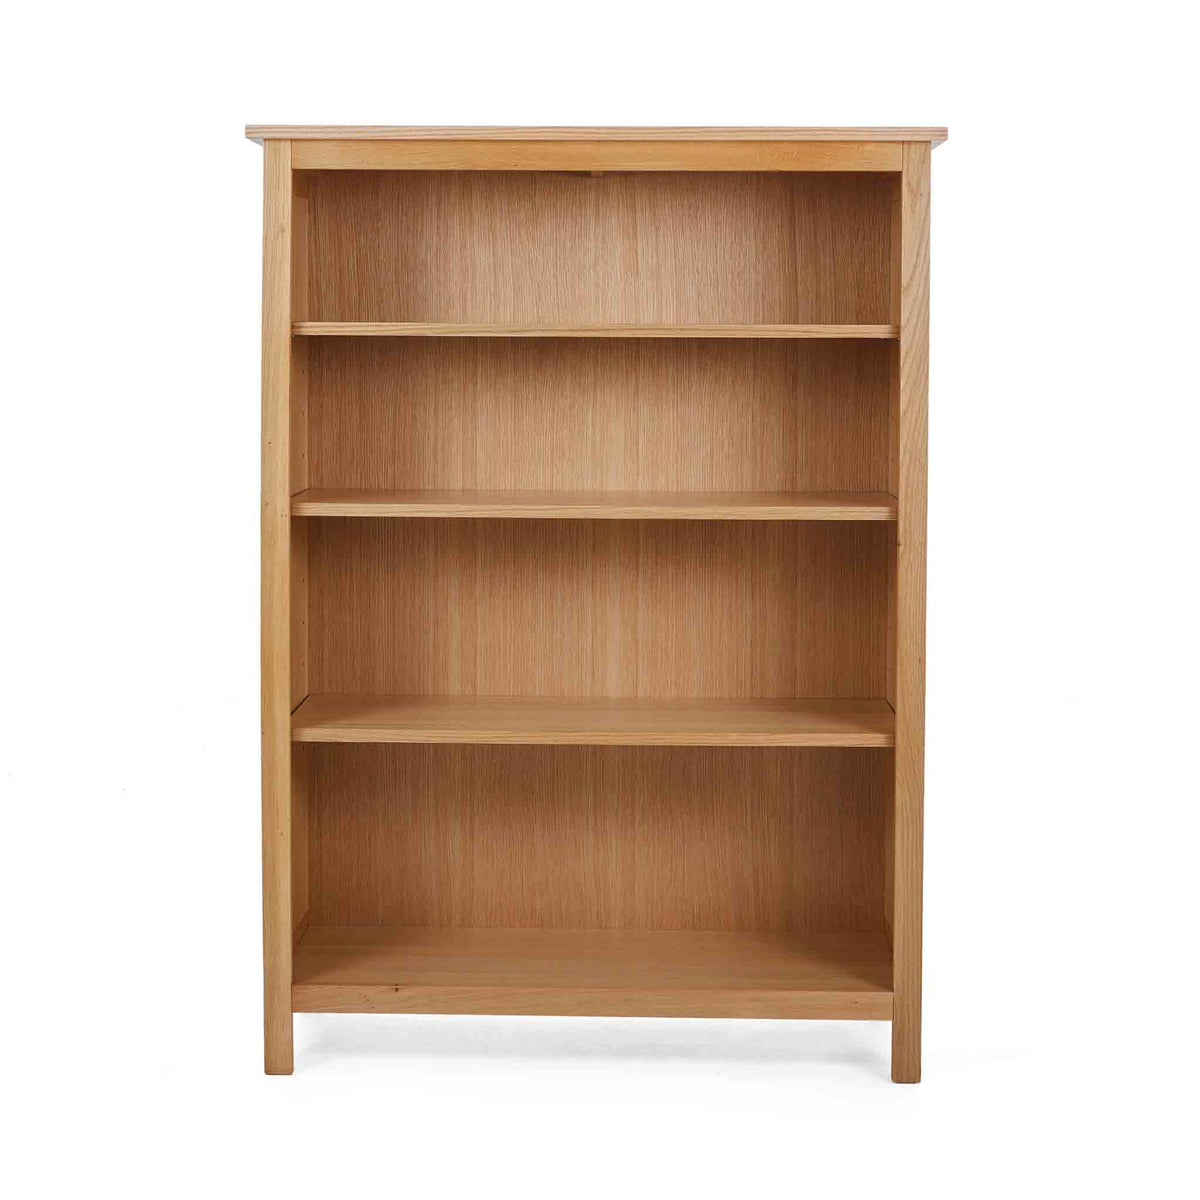 Front view of the Falmouth Oak Small Bookcase